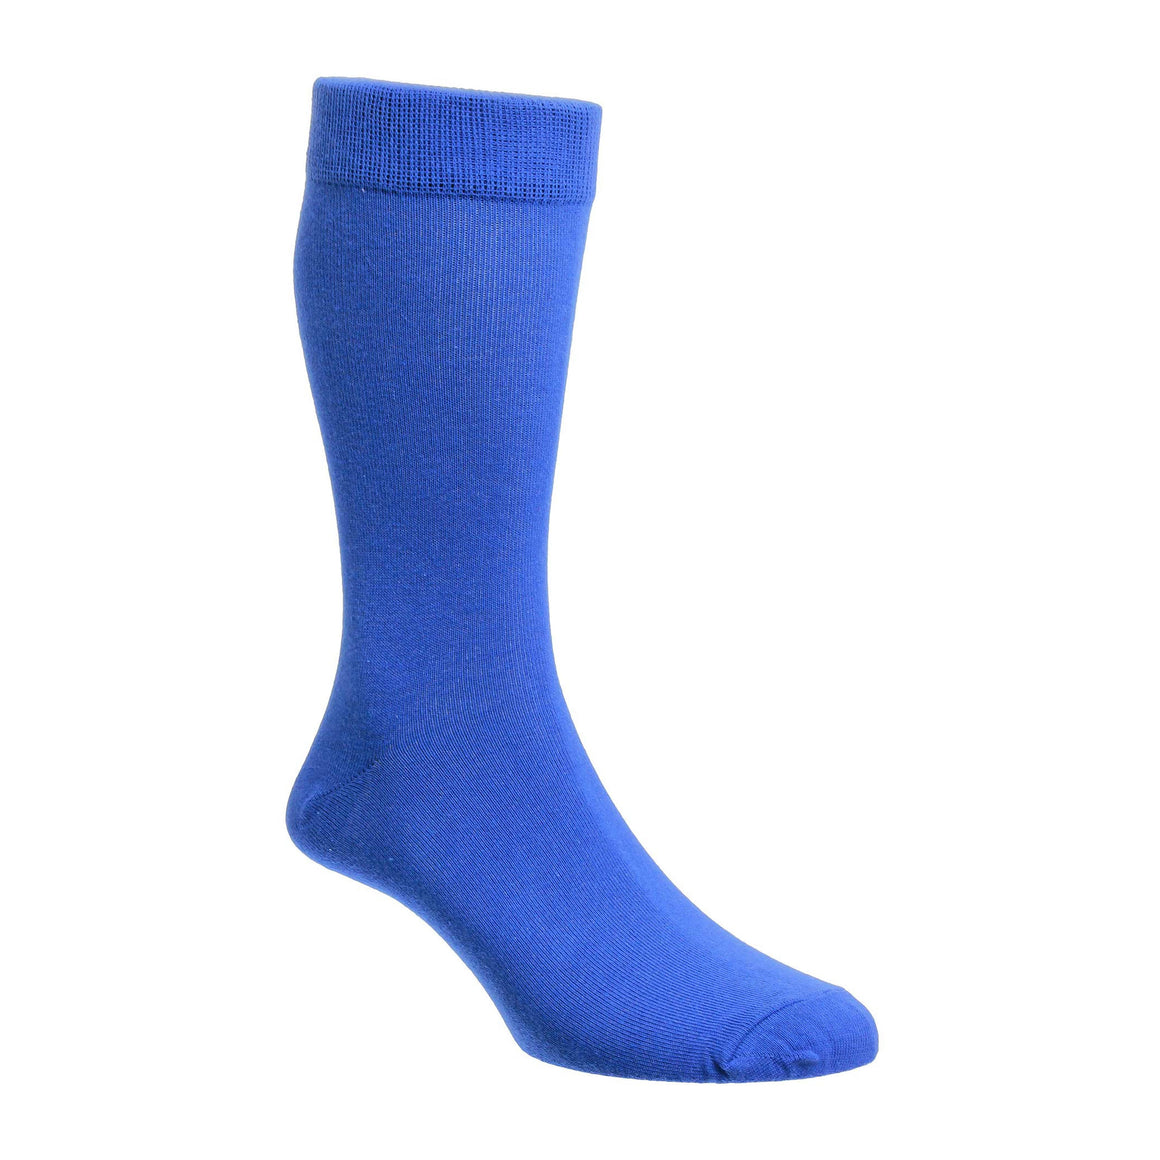 HJ593 Socks for Men in Blue